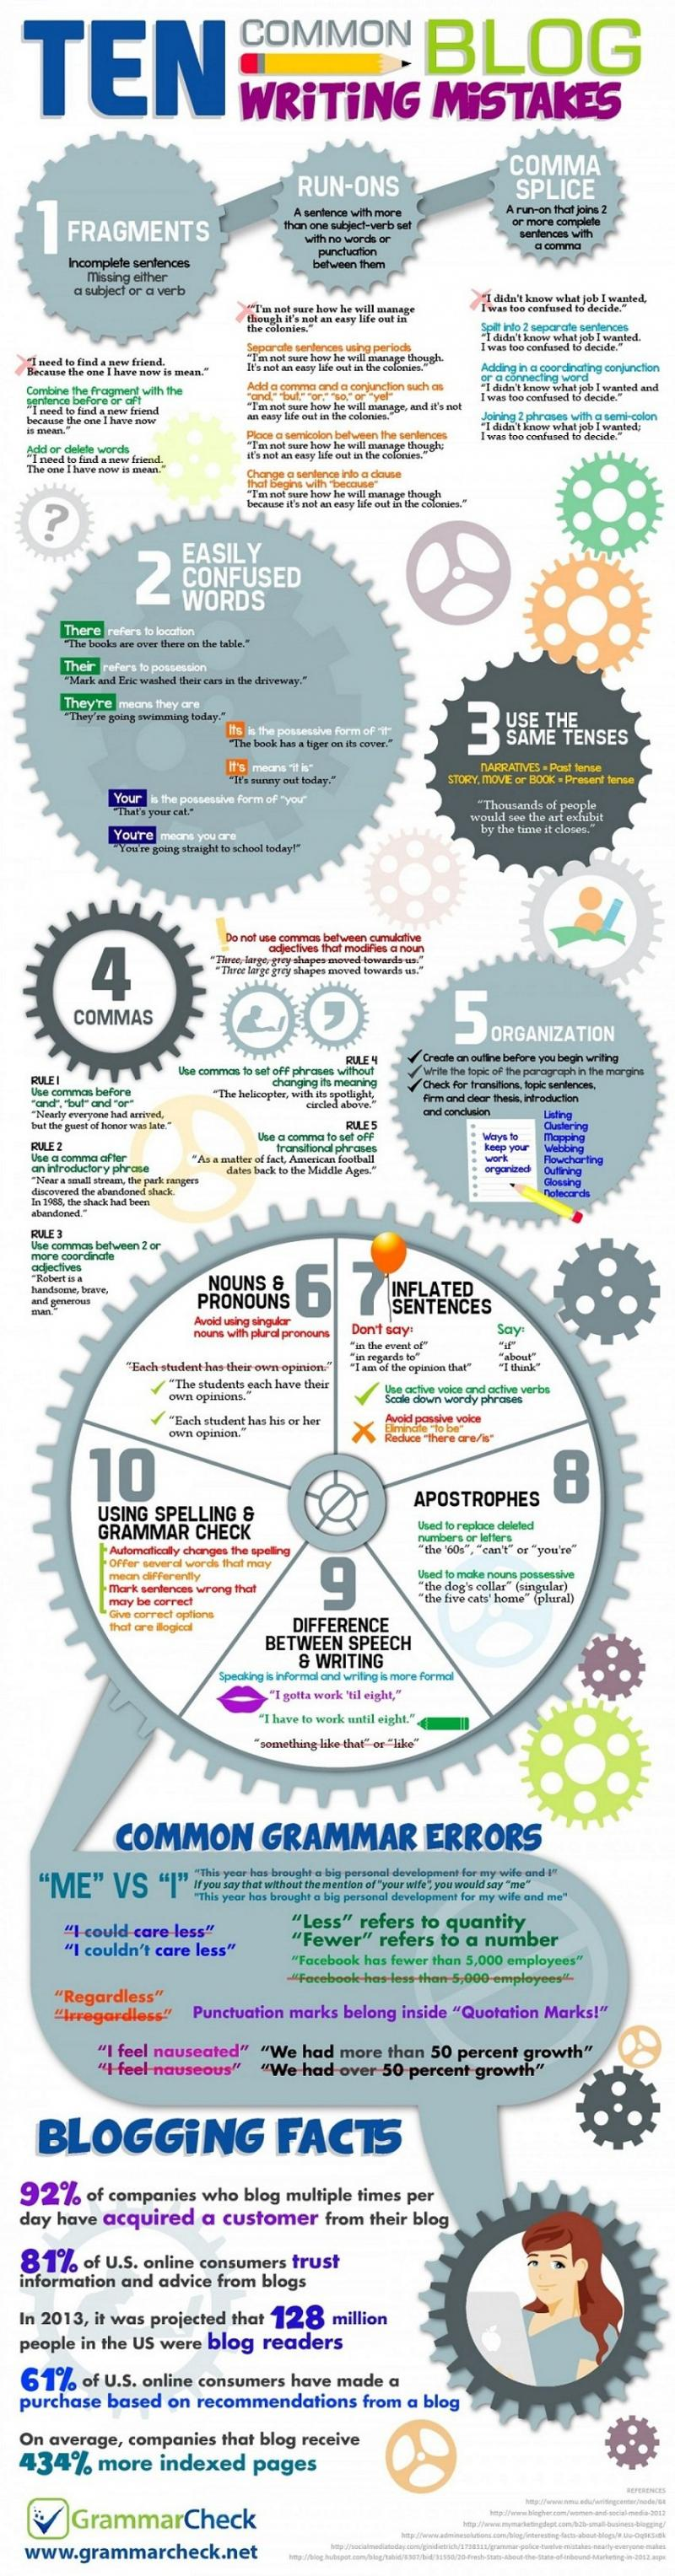 Ten Common Blog Writing Mistakes #Infographic